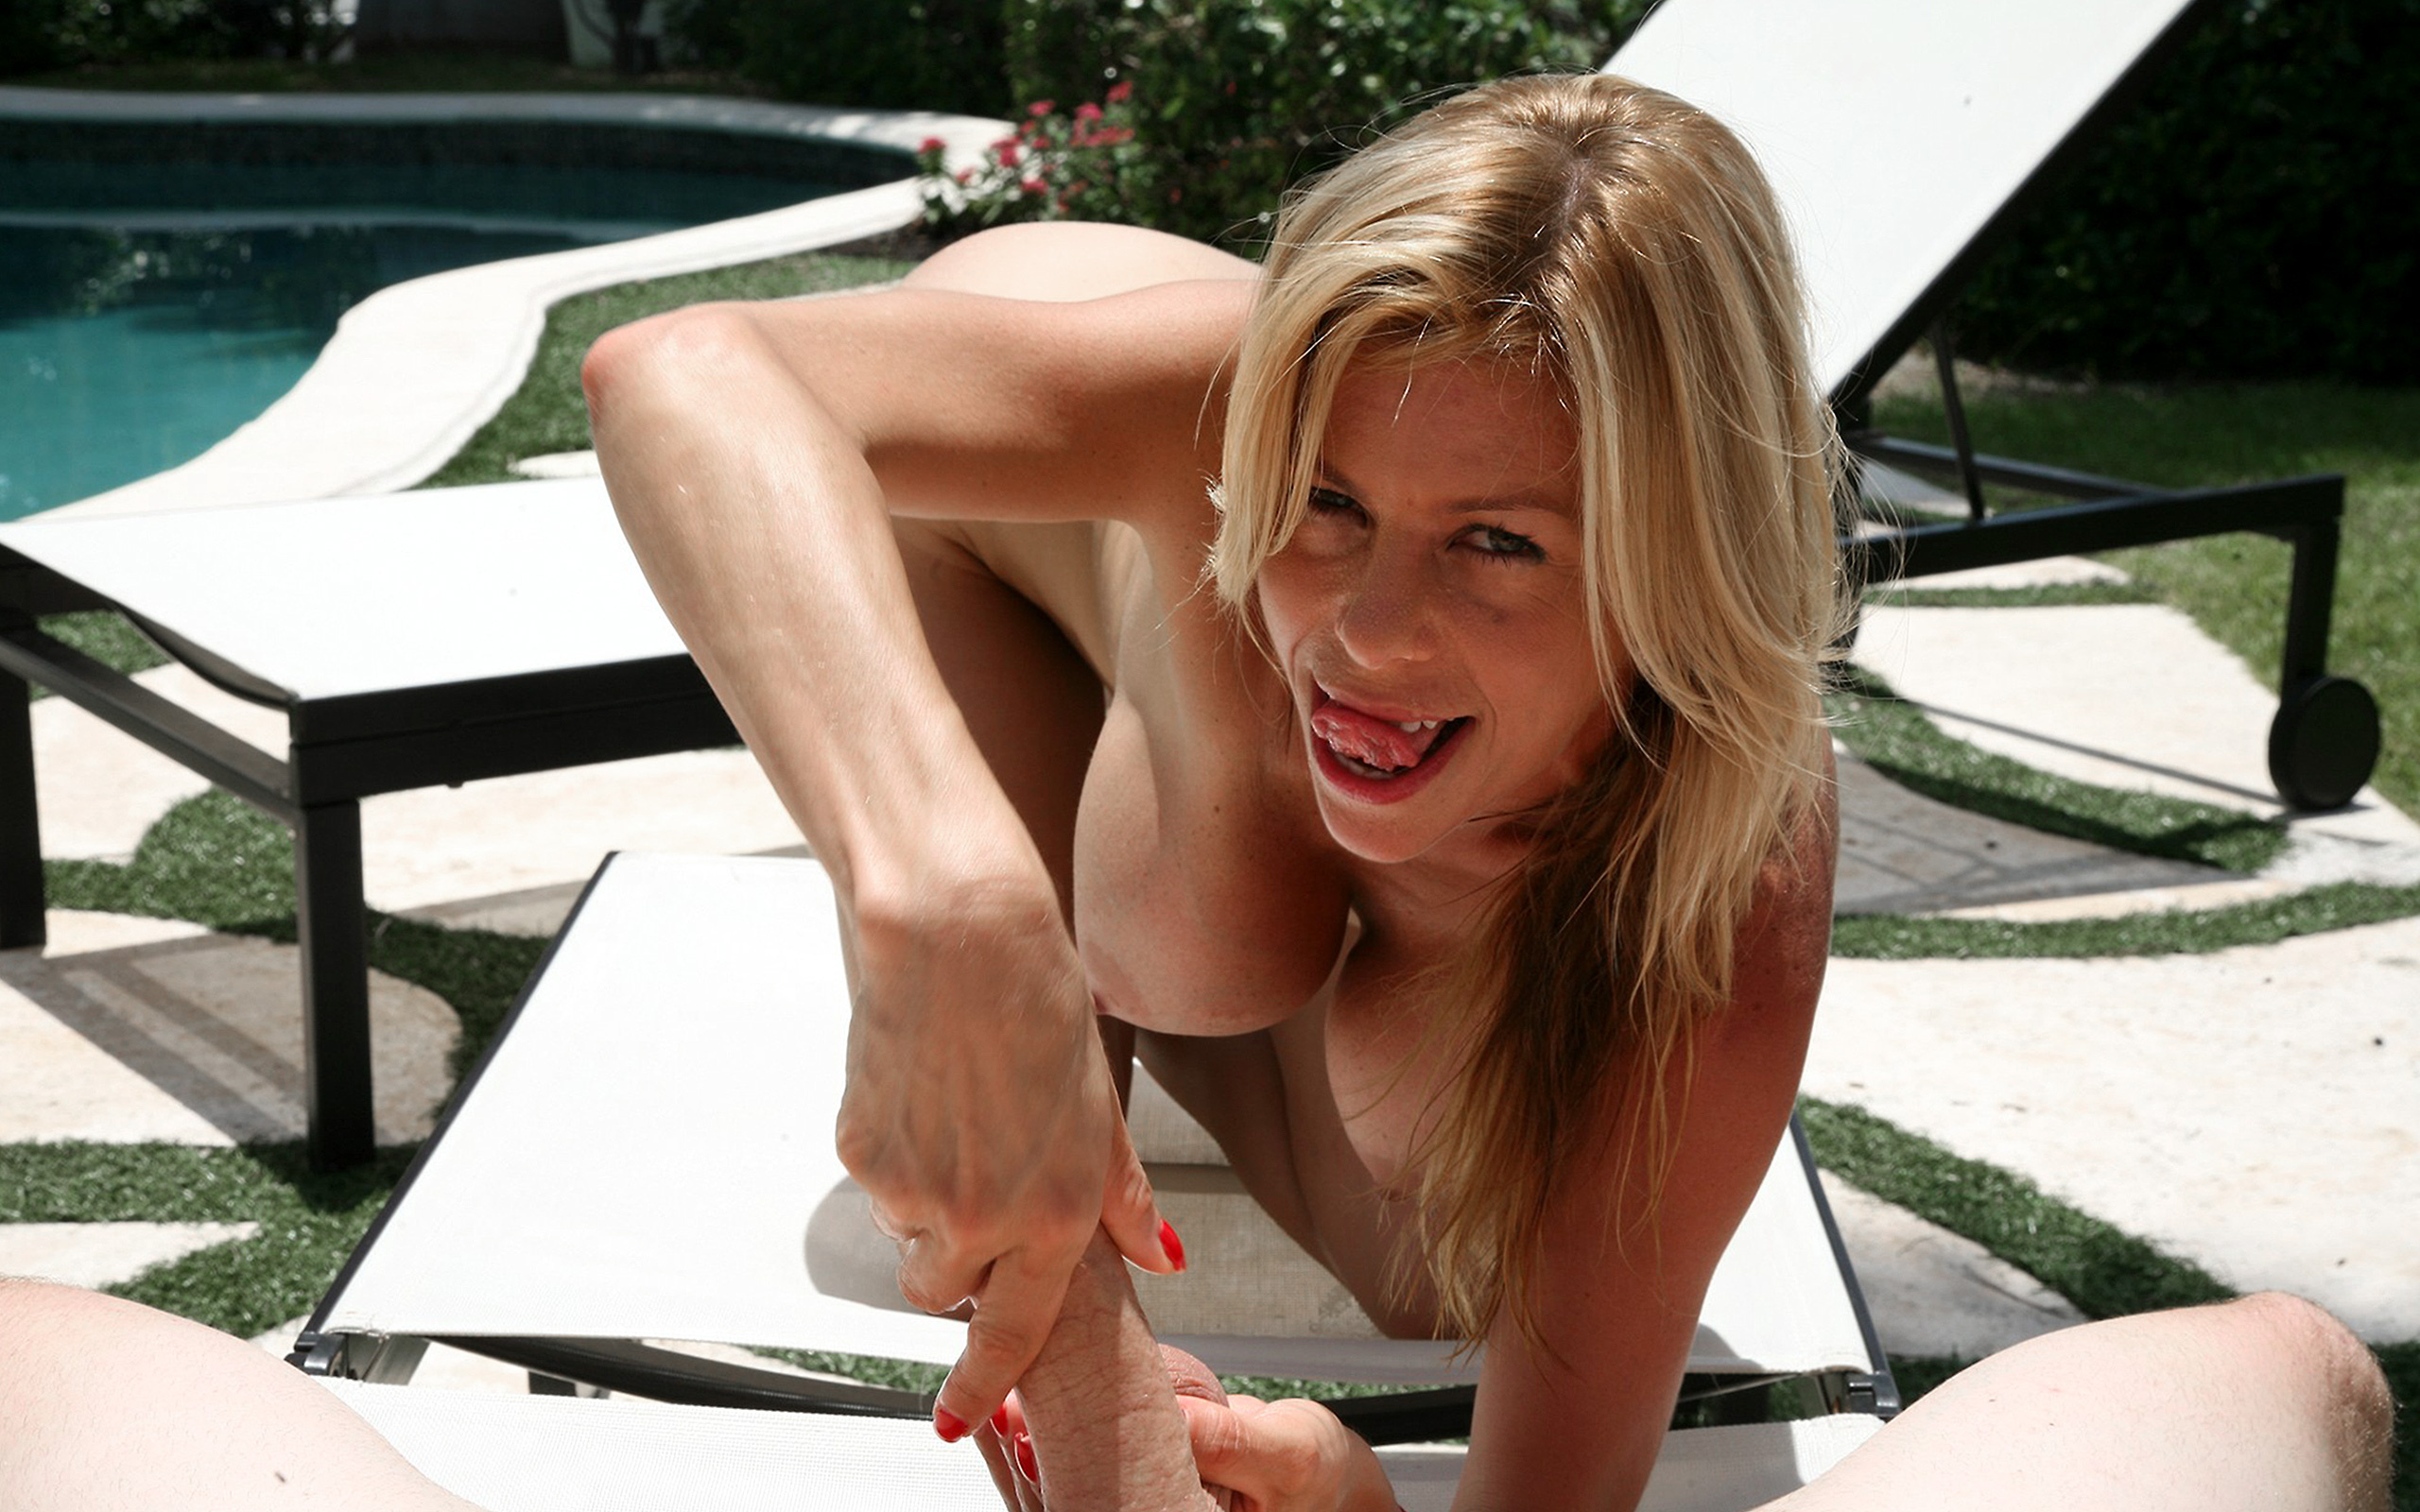 Job blonde tug pool side